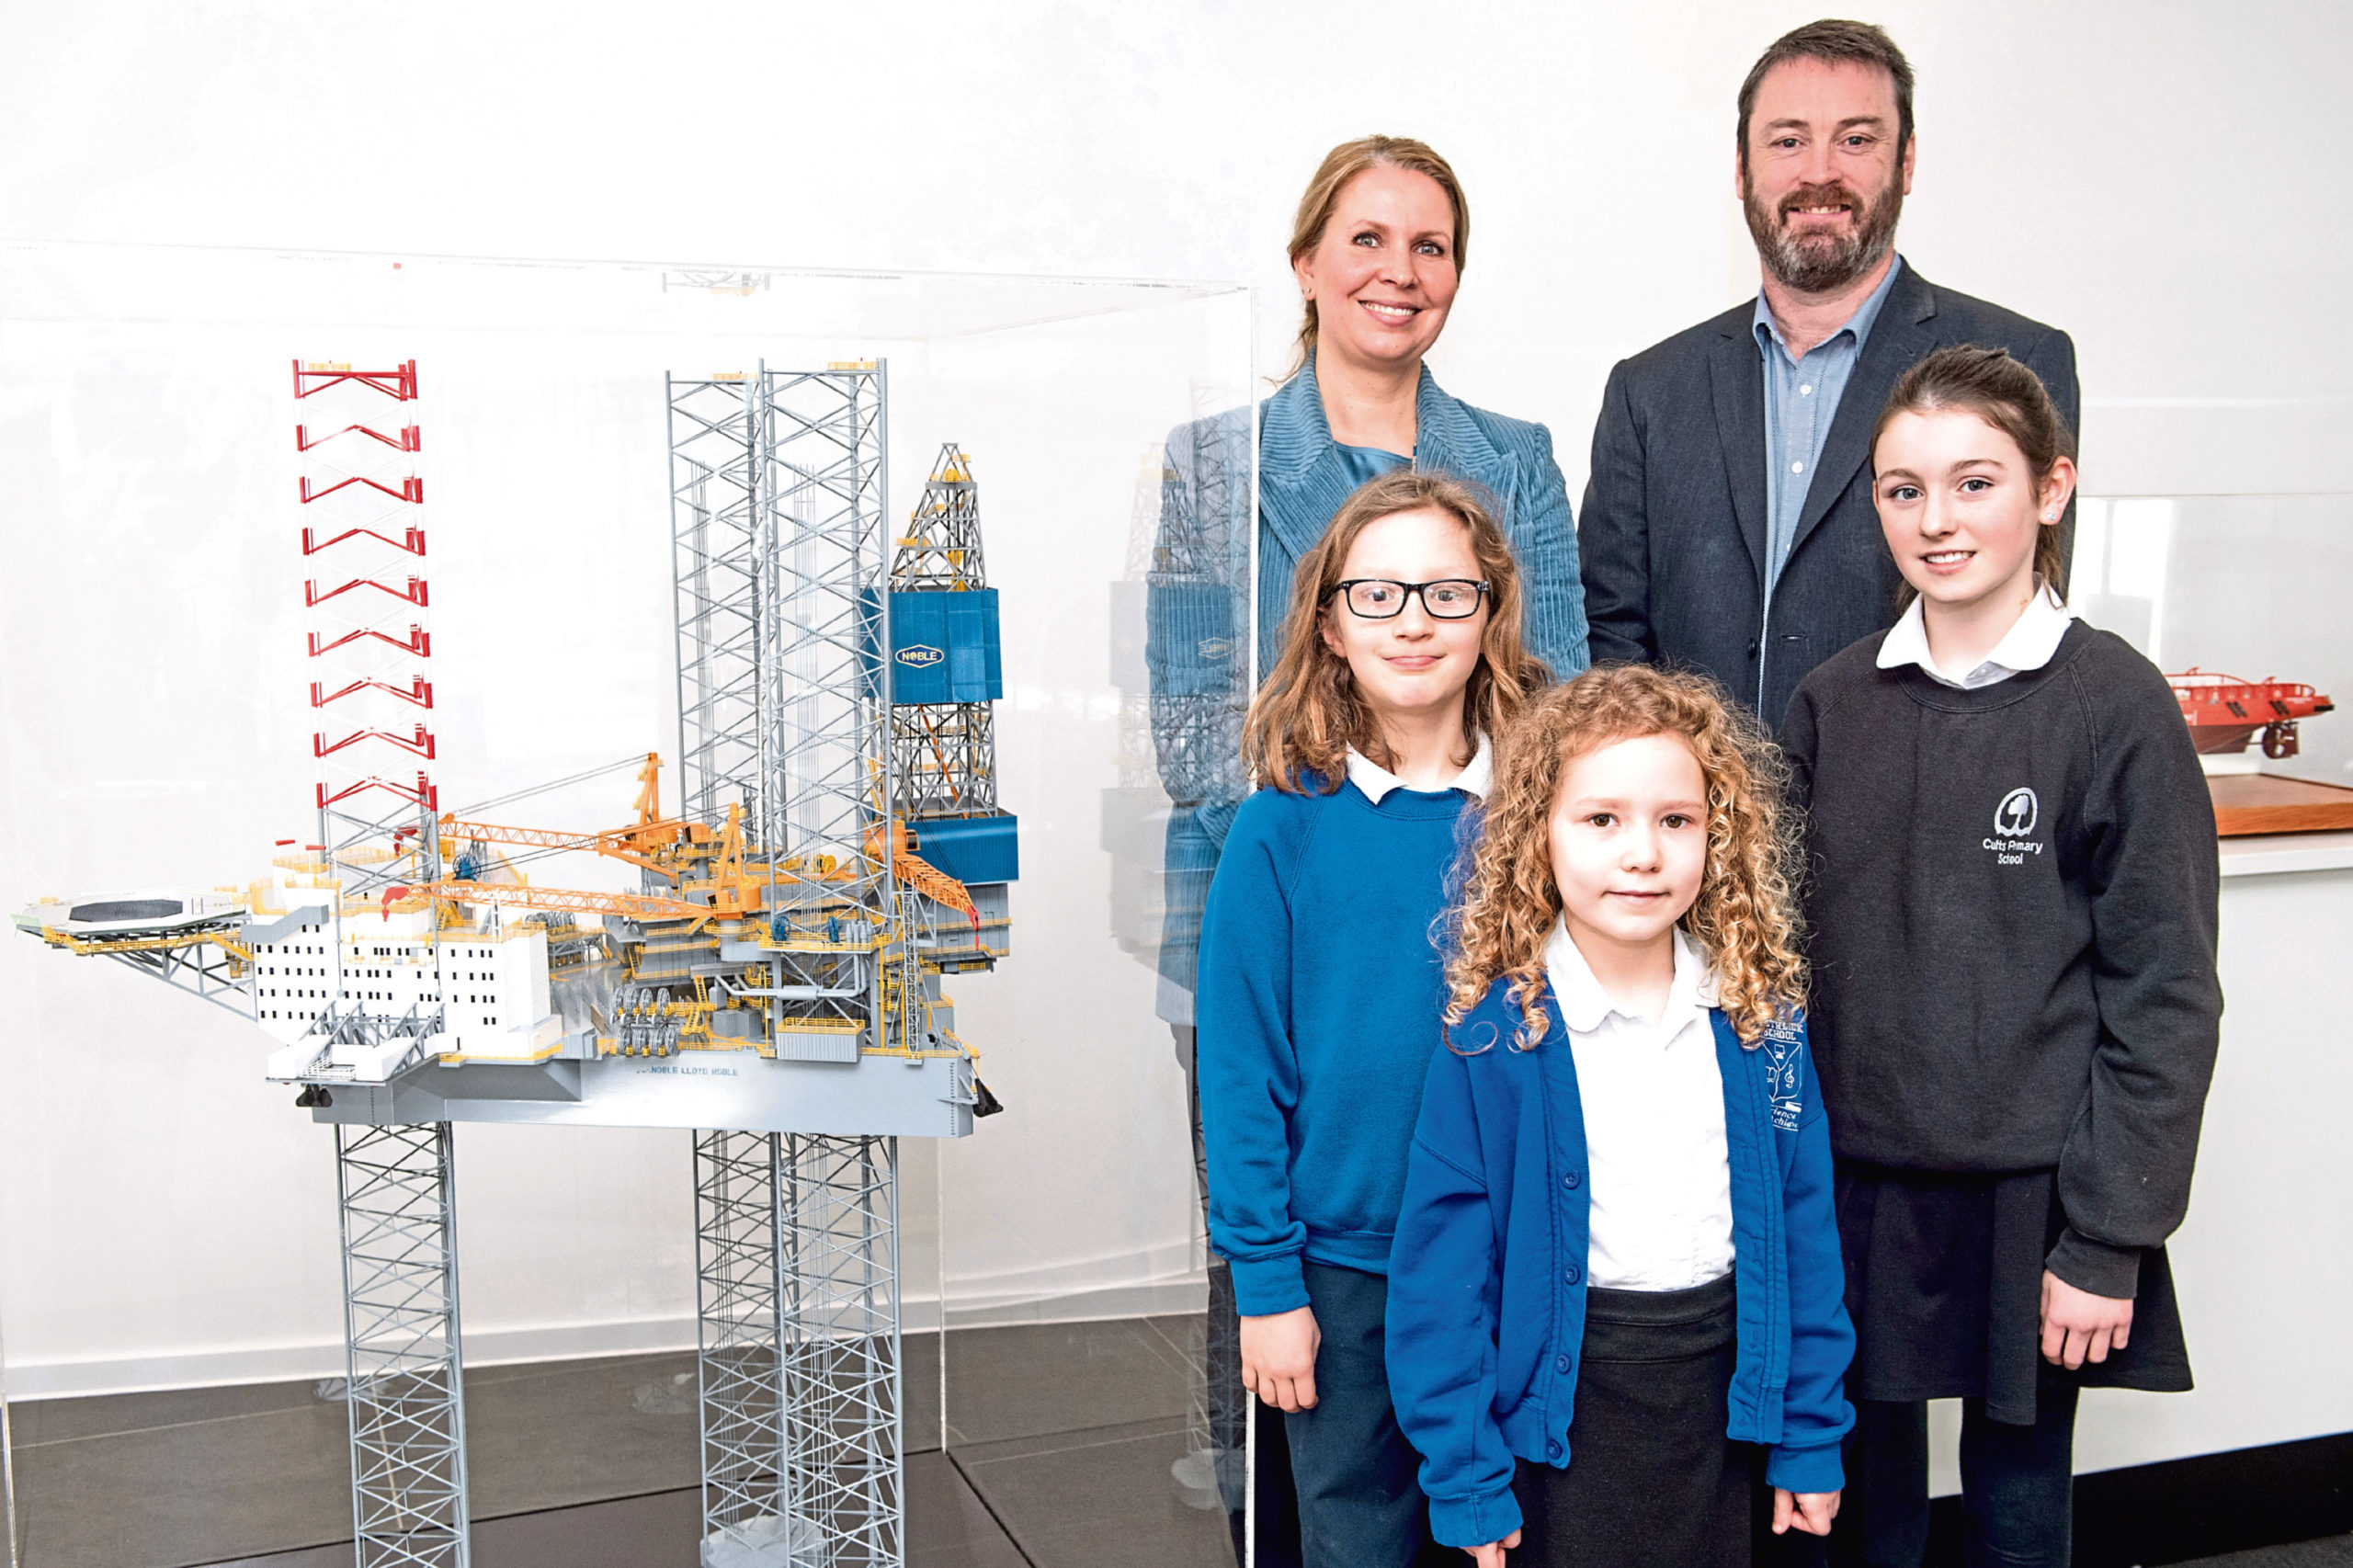 Maja Kildedal, head of innovation & improvement for Equinor UK and Ireland, and Bryan Snelling, CEO of Aberdeen Science Centre with pupils from the winning schools, Fergus Skolnik, Rowan Cuthill and Erin Macleod